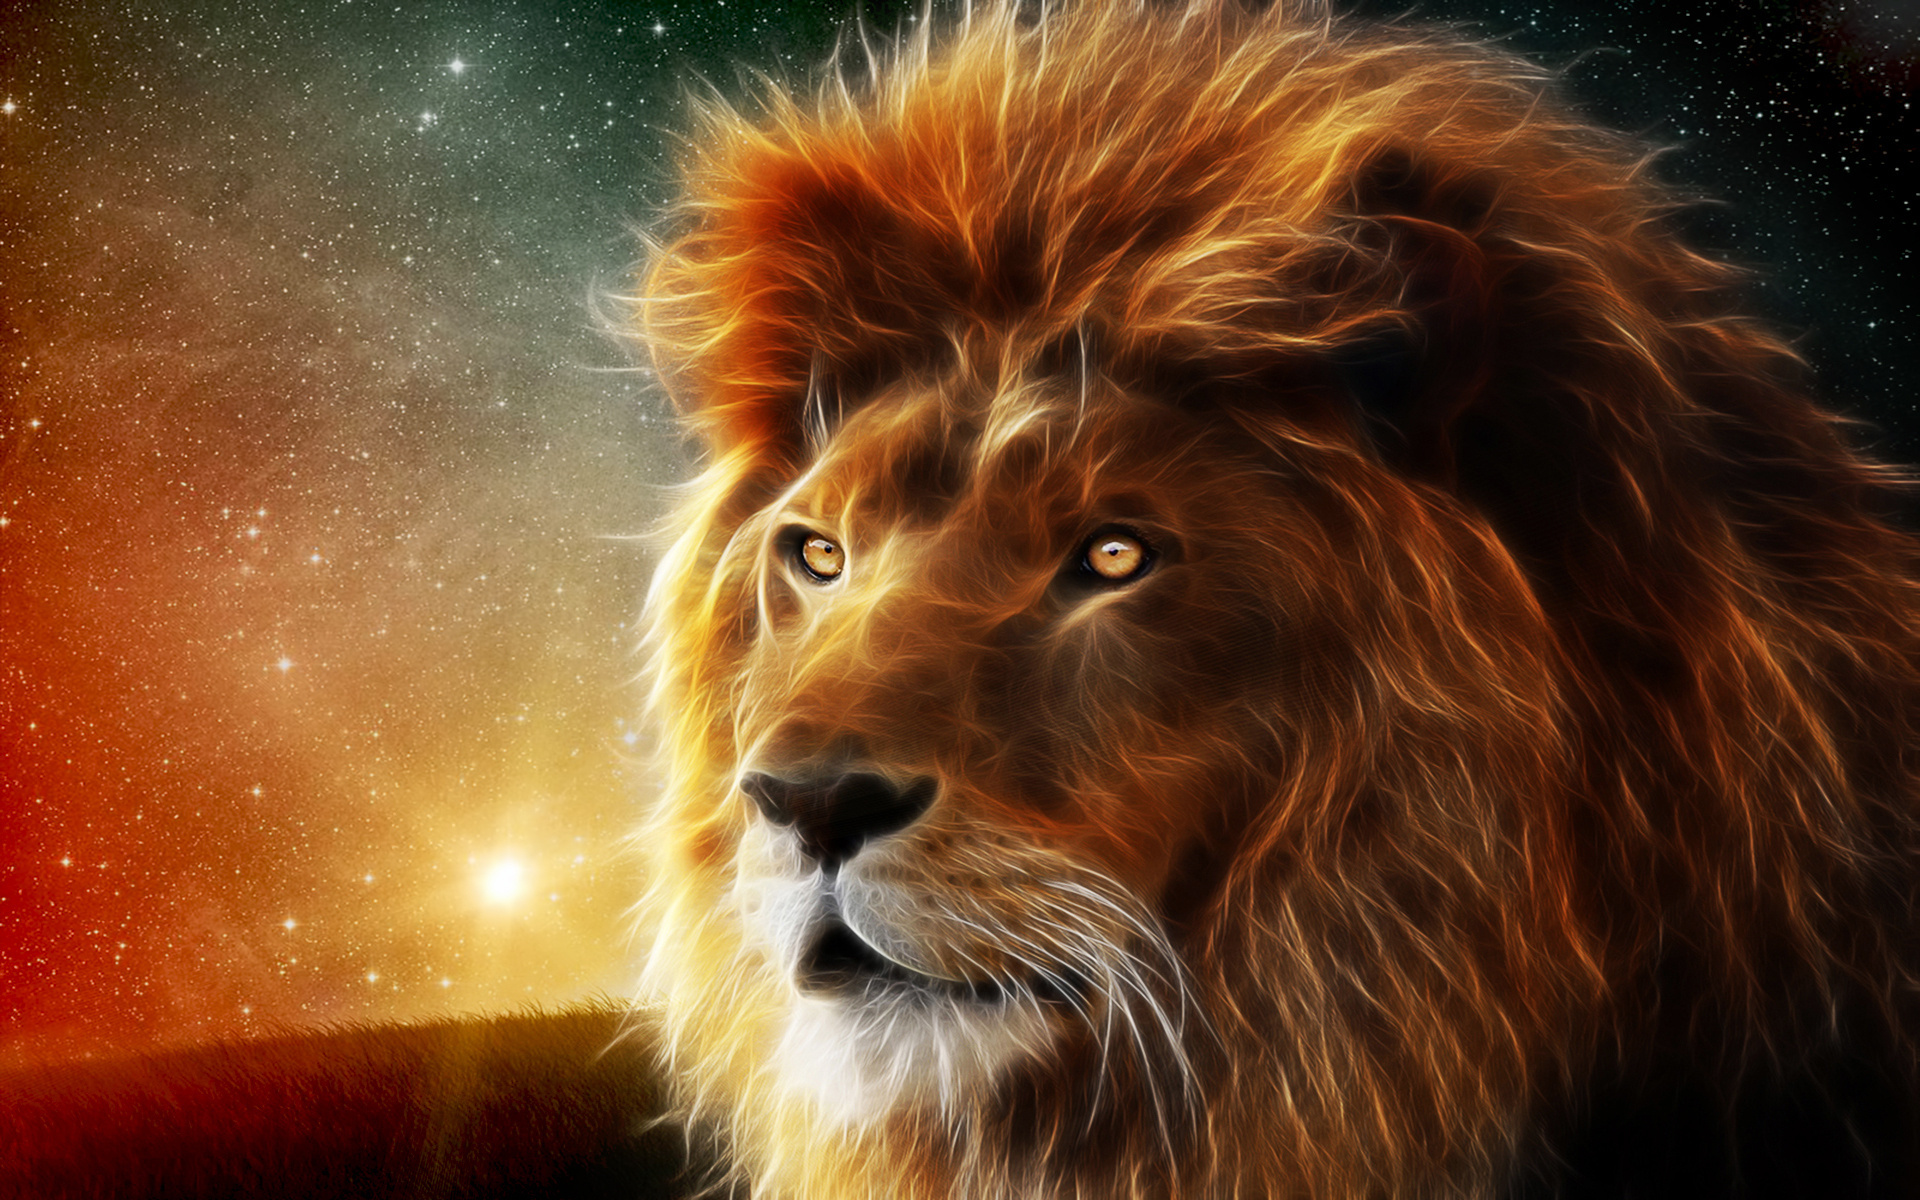 793 Lion HD Wallpapers   Backgrounds - Wallpaper Abyss - Page 2